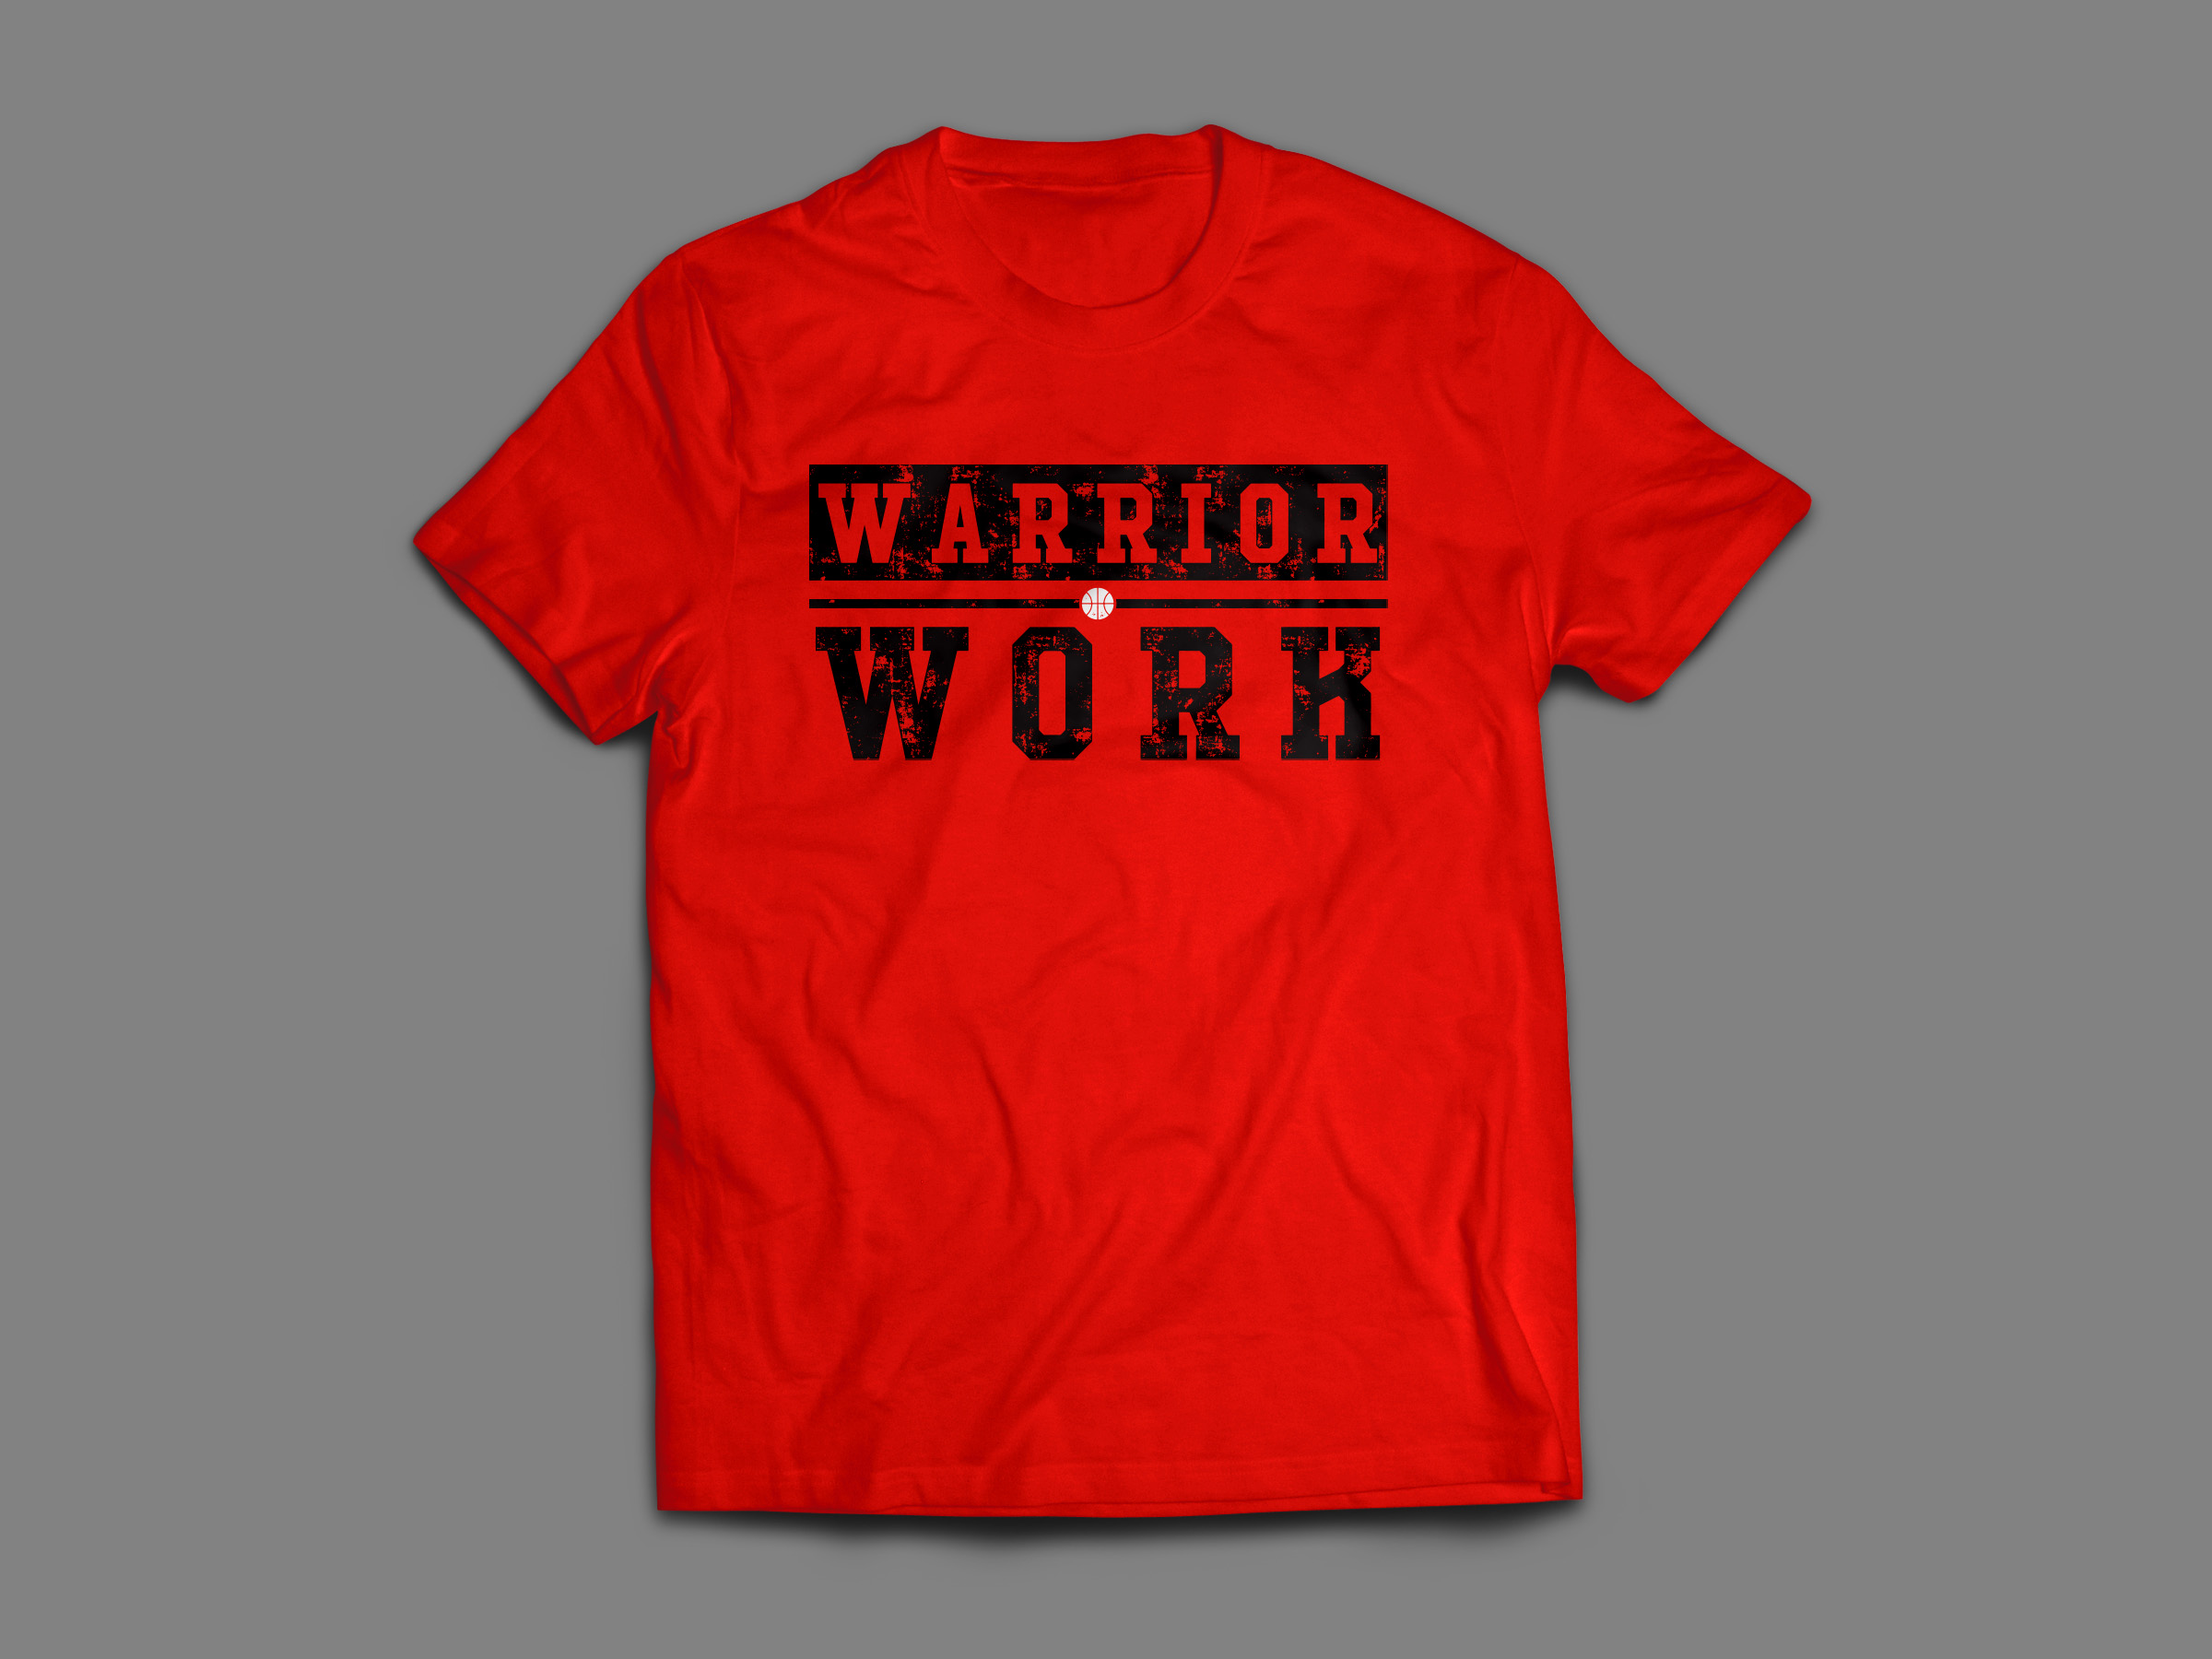 WARRIOR WORK RED